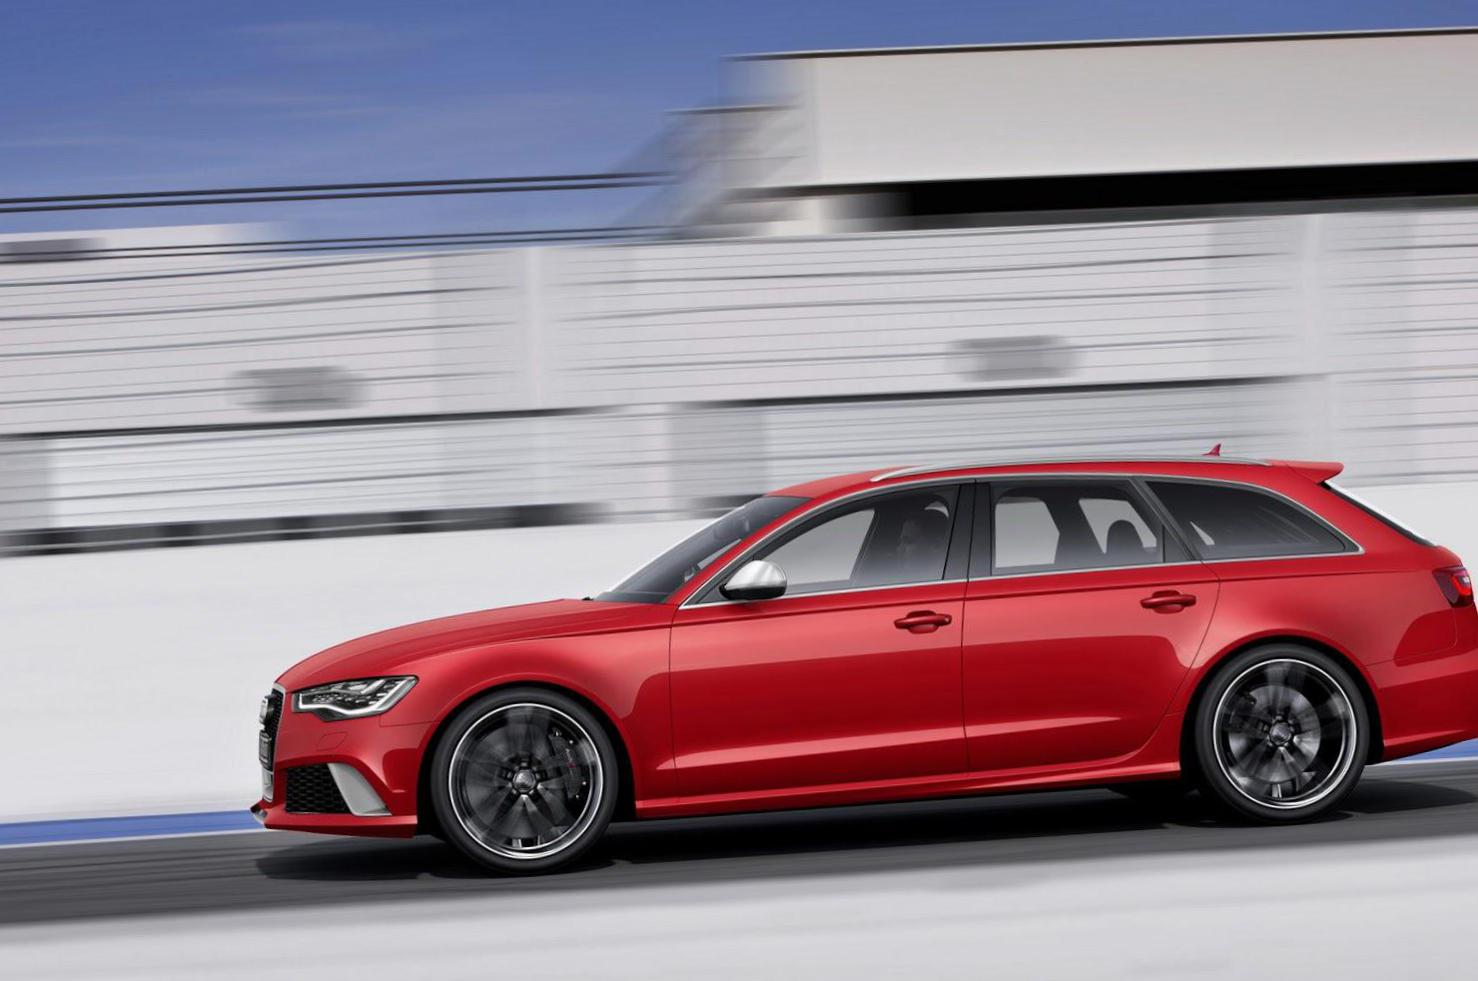 Audi RS6 Avant model coupe